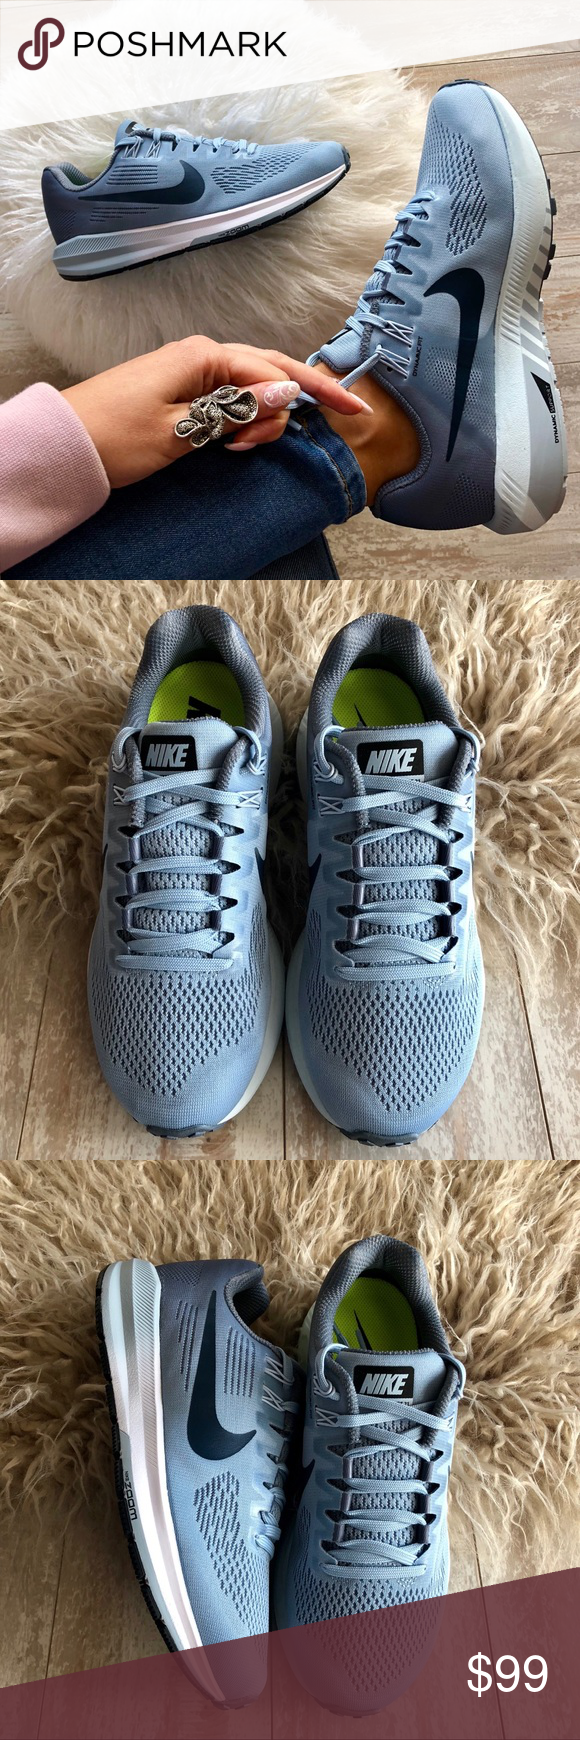 9a61c1b58ba90 NWT Nike Air Zoom structure 21! Brand new with box no lid